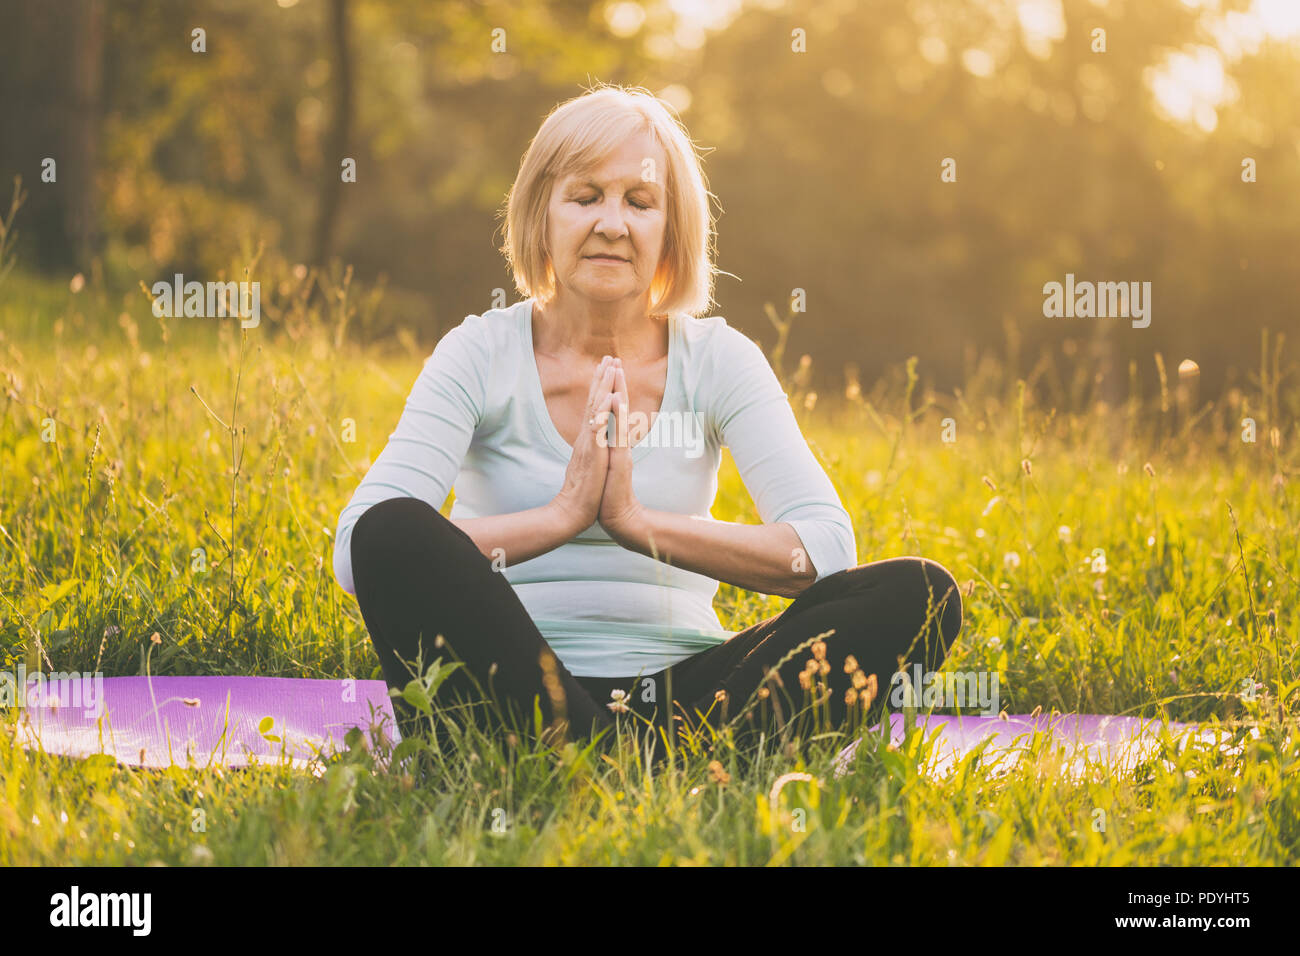 Senior woman enjoys meditating in the nature.Image is intentionally toned. - Stock Image